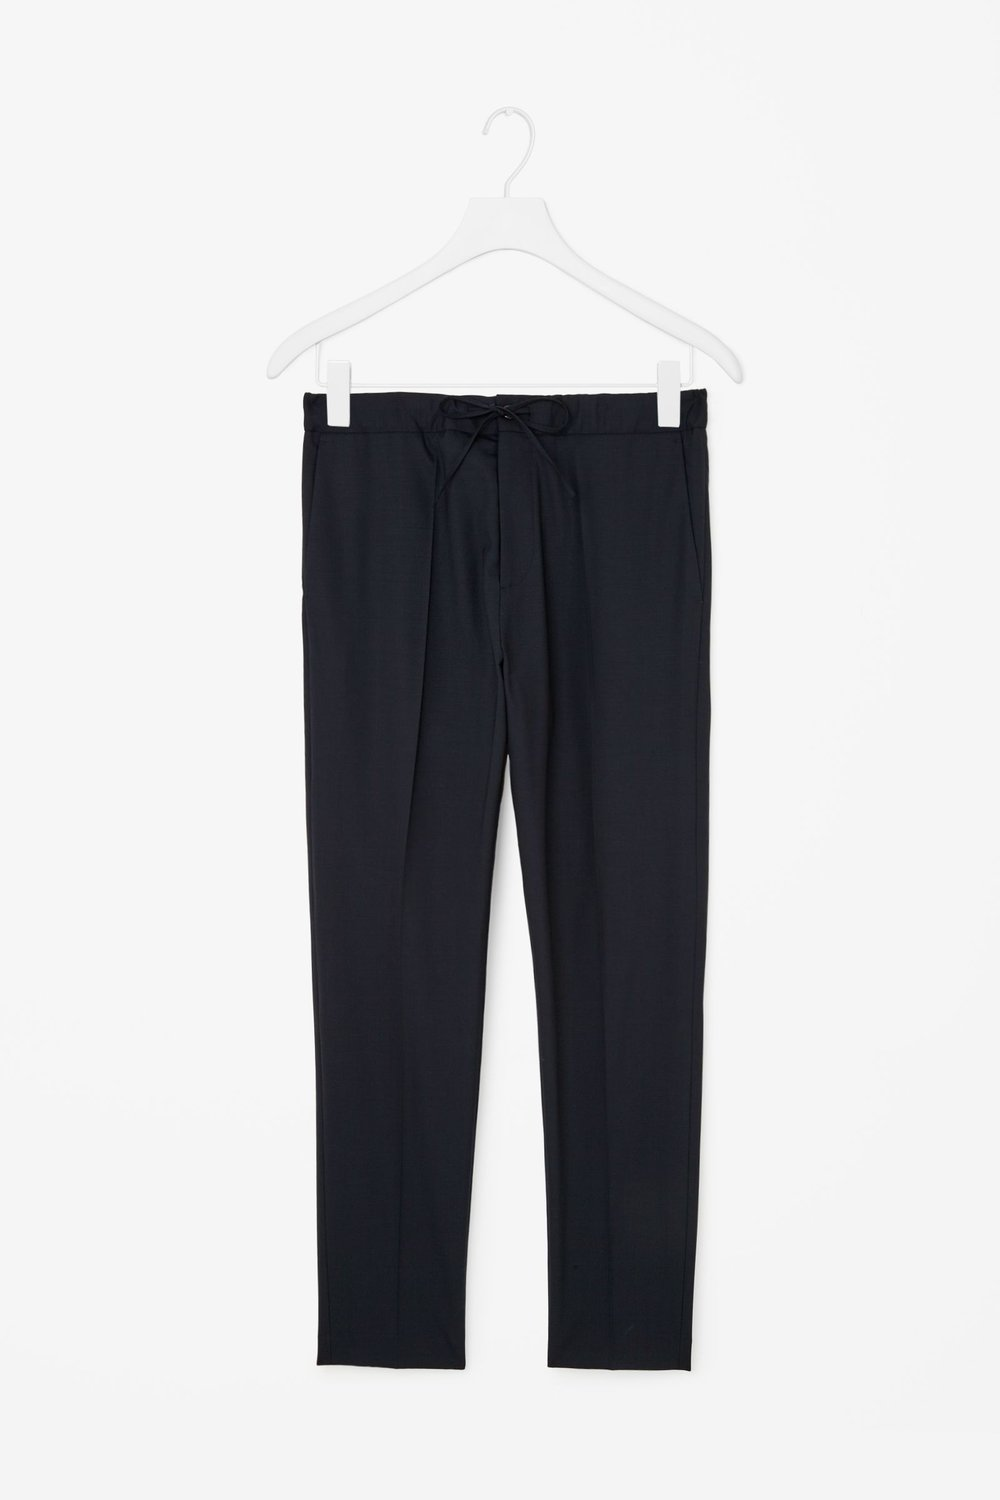 Drawstring tailored trousers, £79 (COSstores.com)